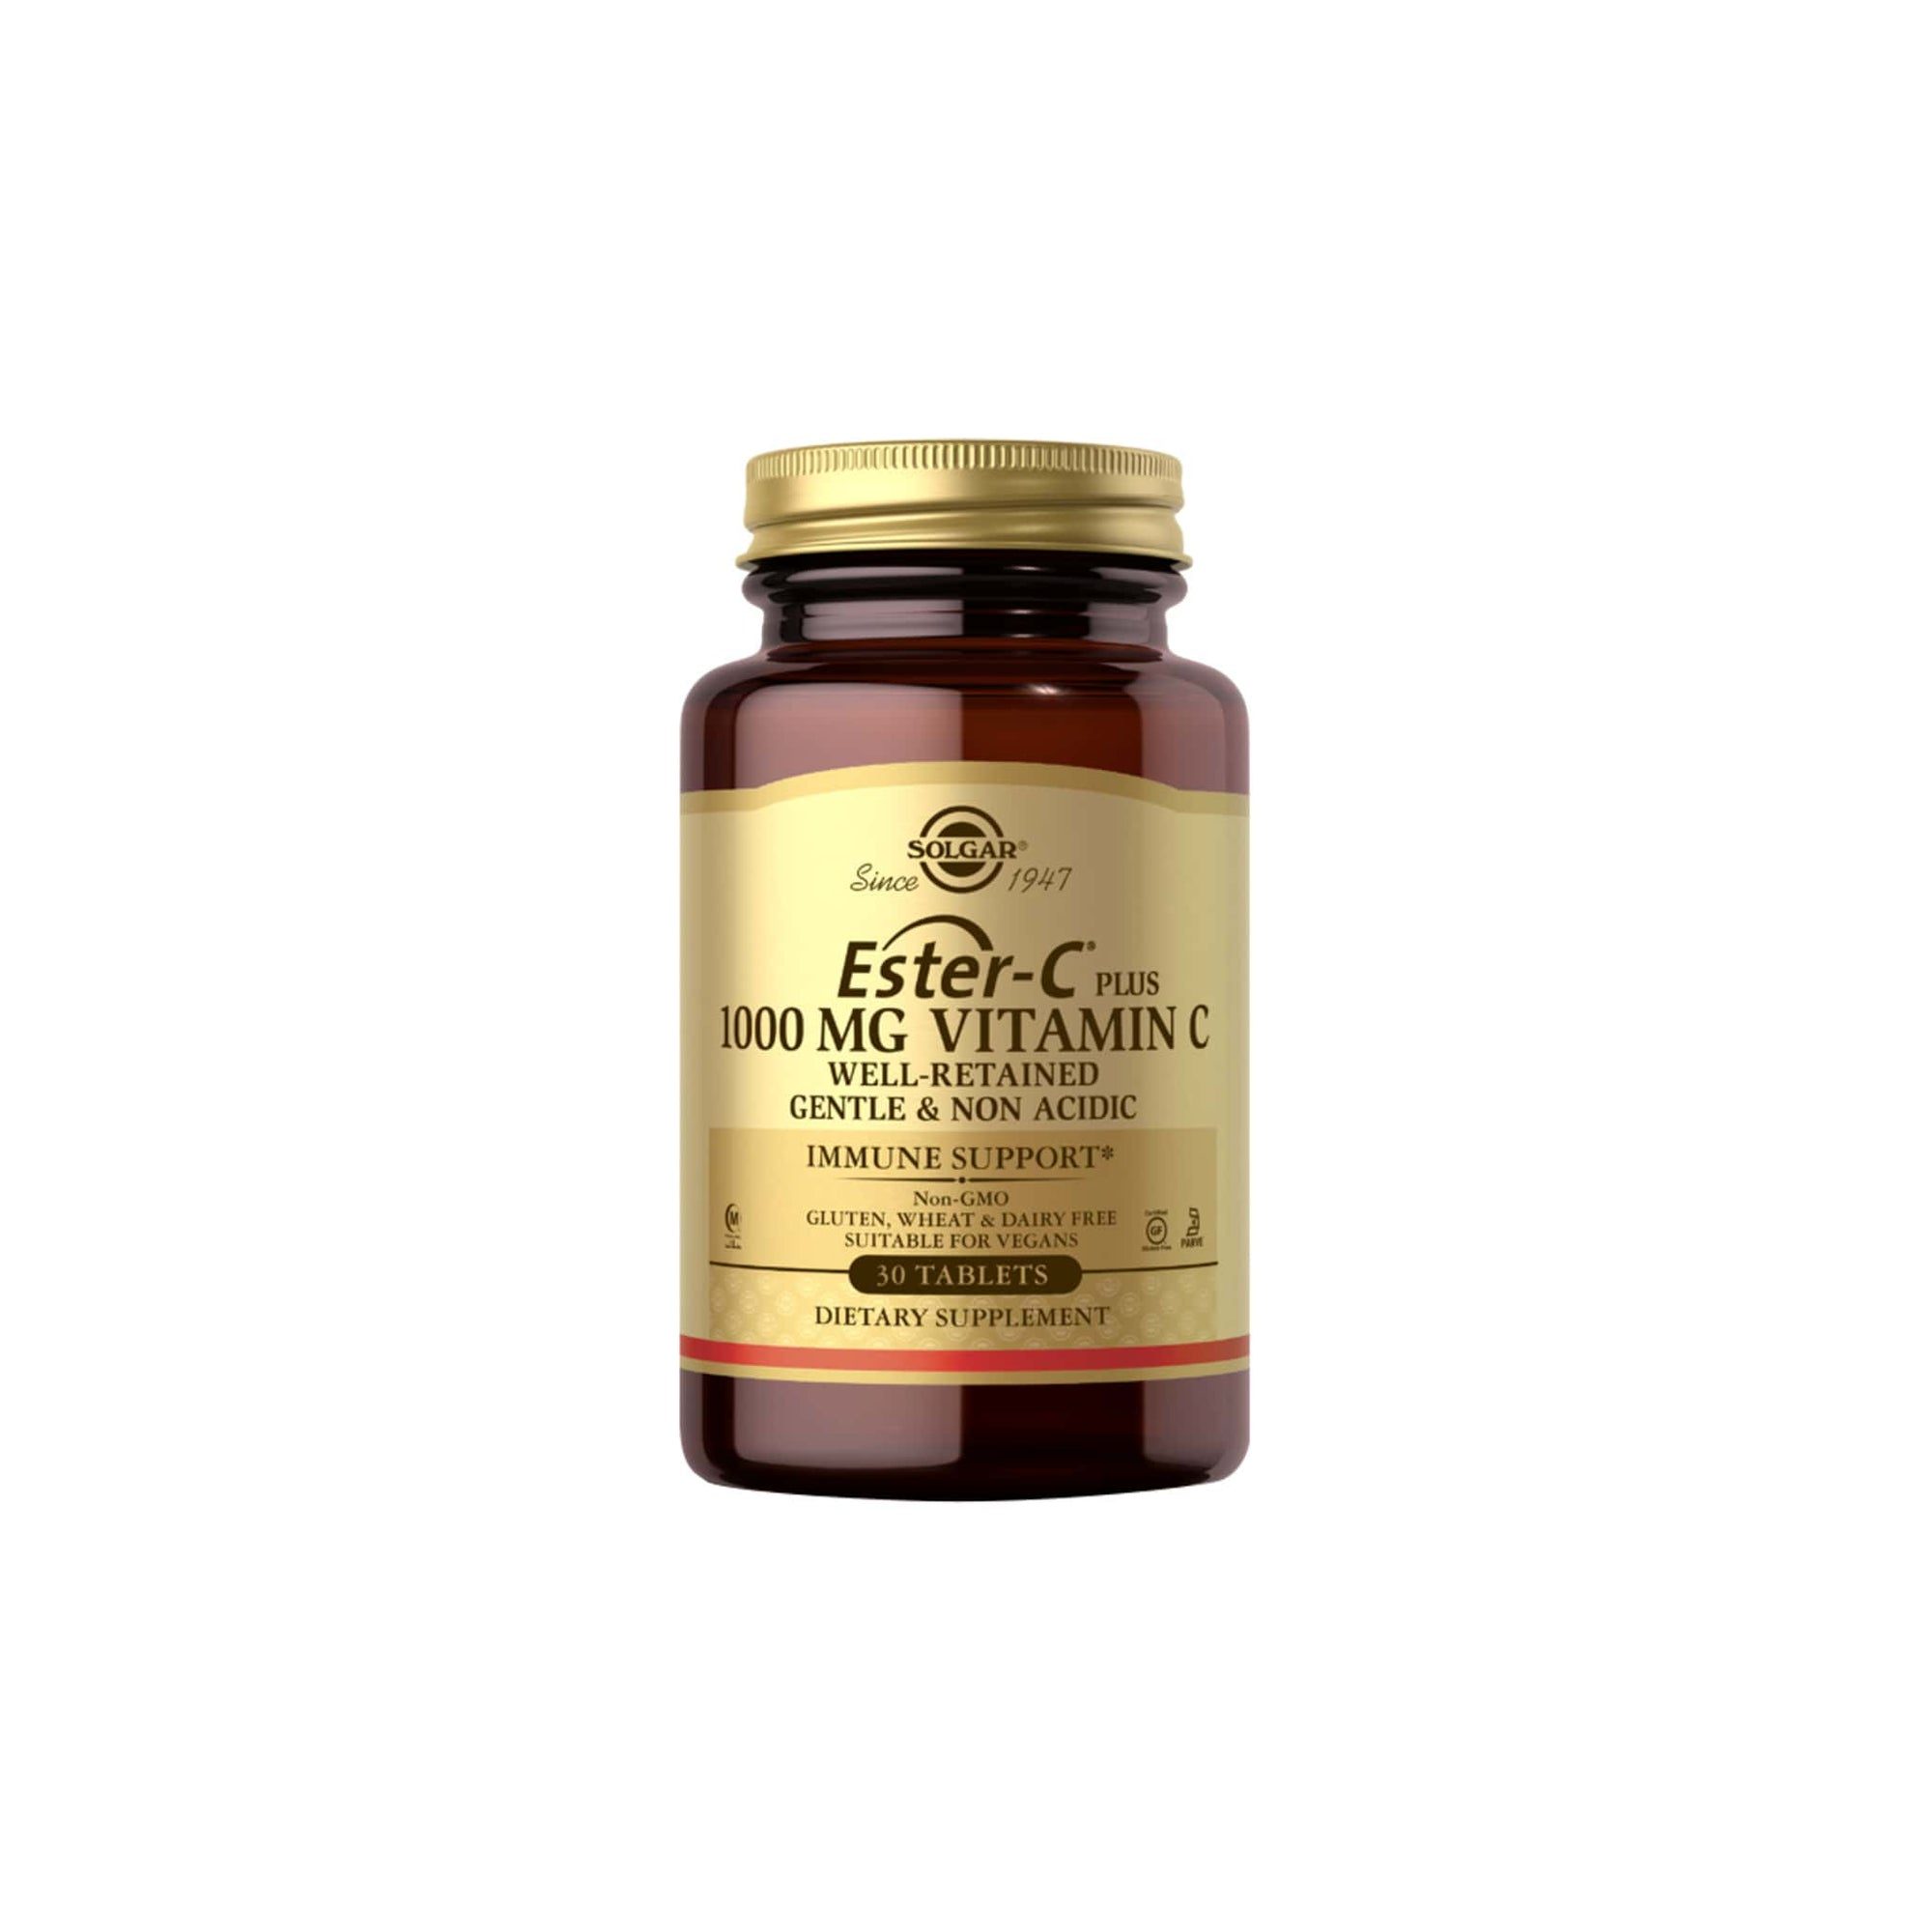 Solgar Ester C Plus 1000MG Vitamin C 90's